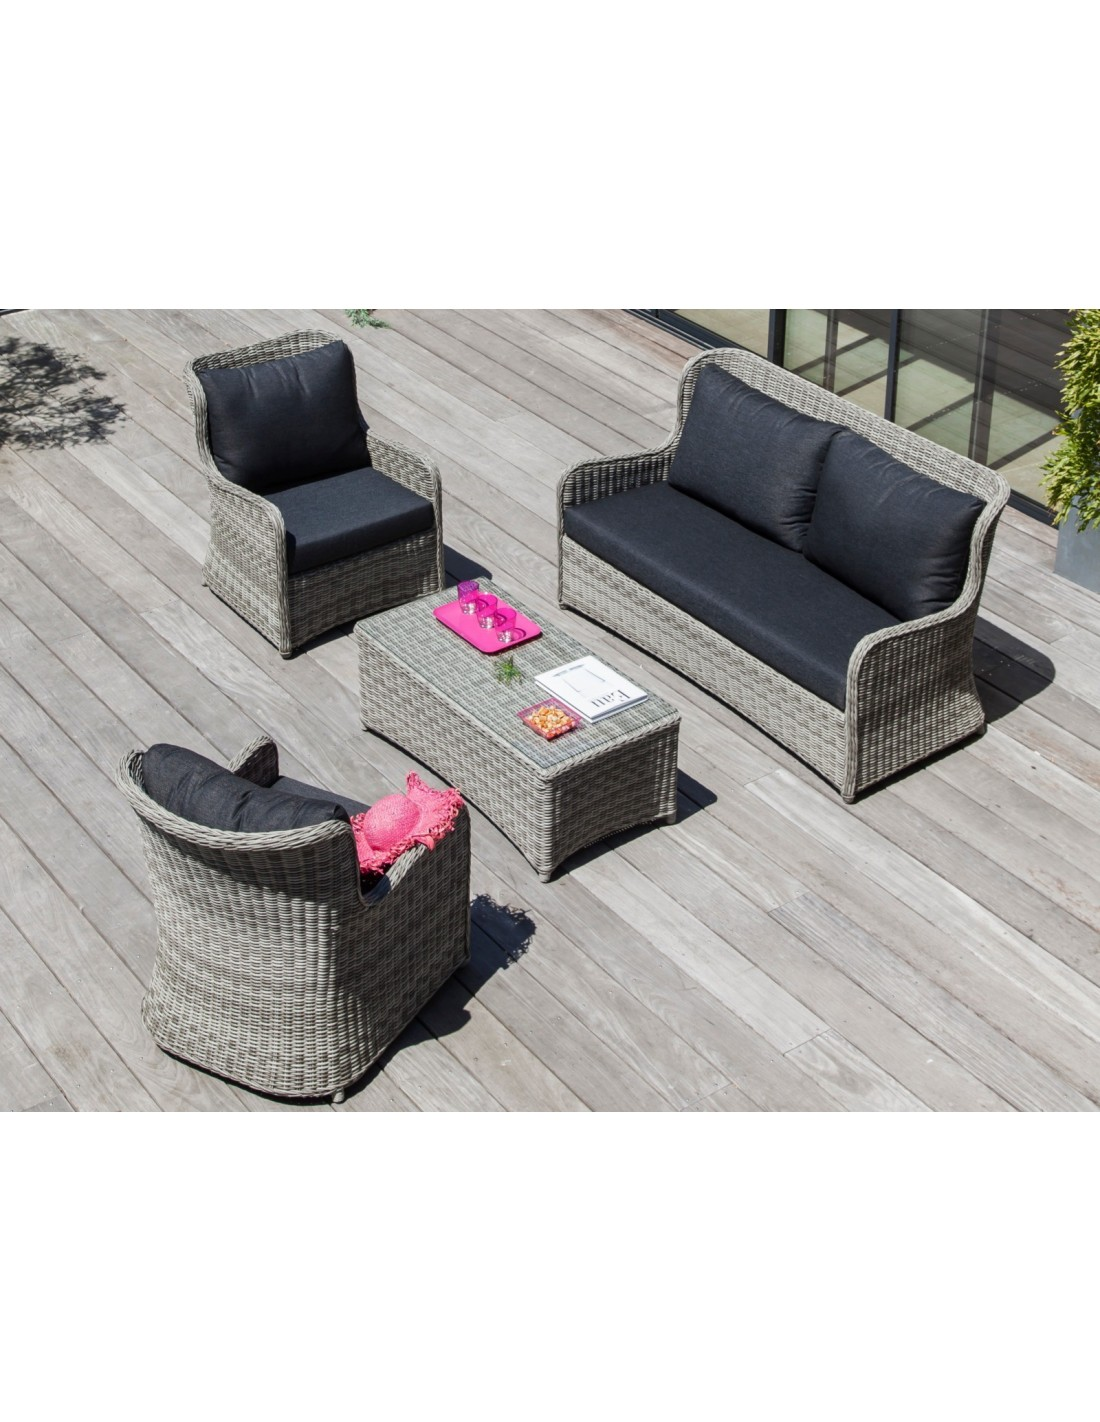 salon de jardin d tente denver 4 personnes r sine tress e. Black Bedroom Furniture Sets. Home Design Ideas